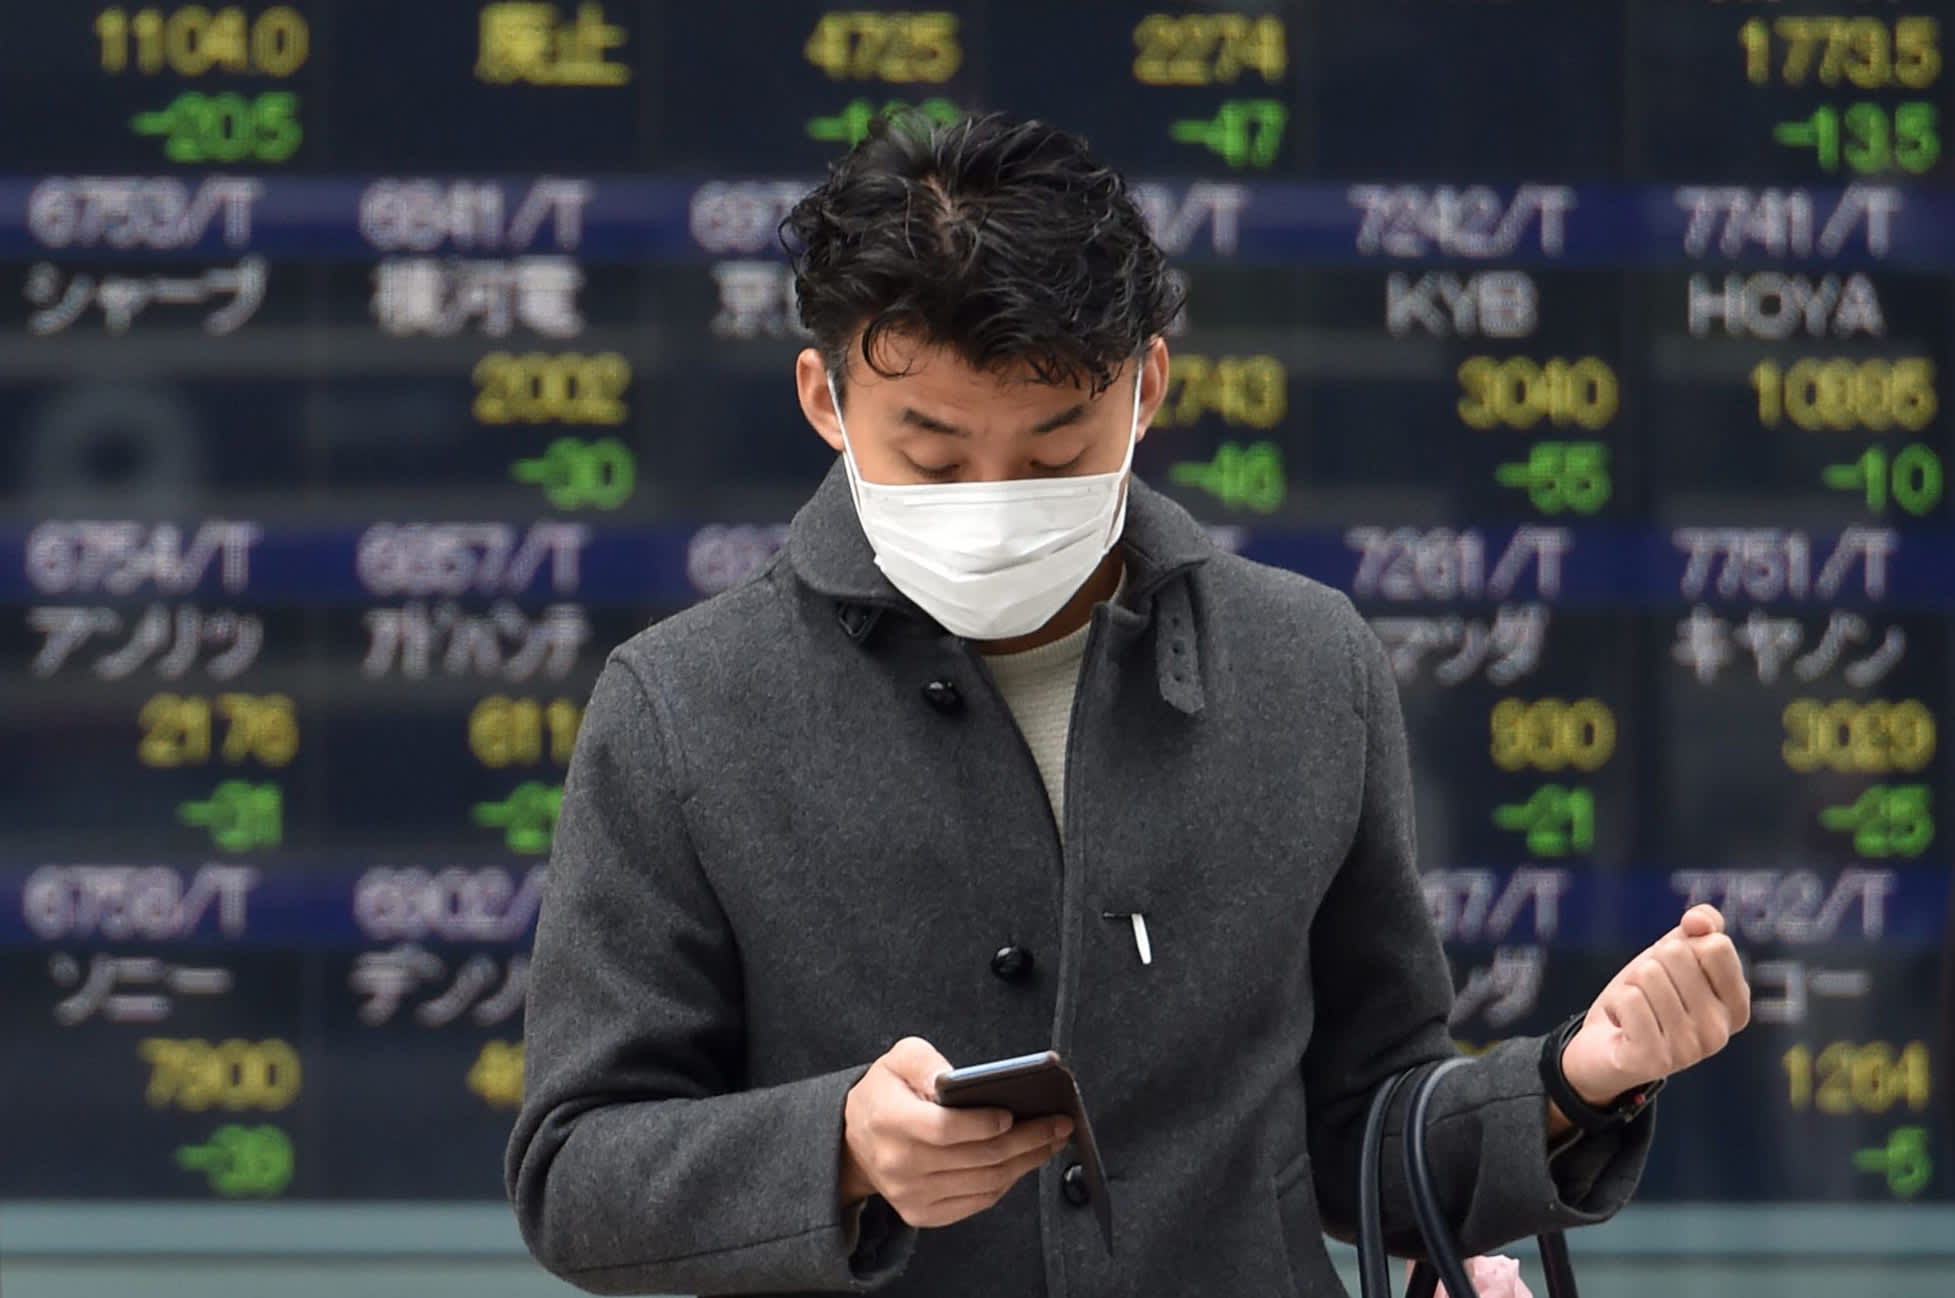 Japan stocks drop 5%, China and Hong Kong shares plunge beyond 3% amid oil price war